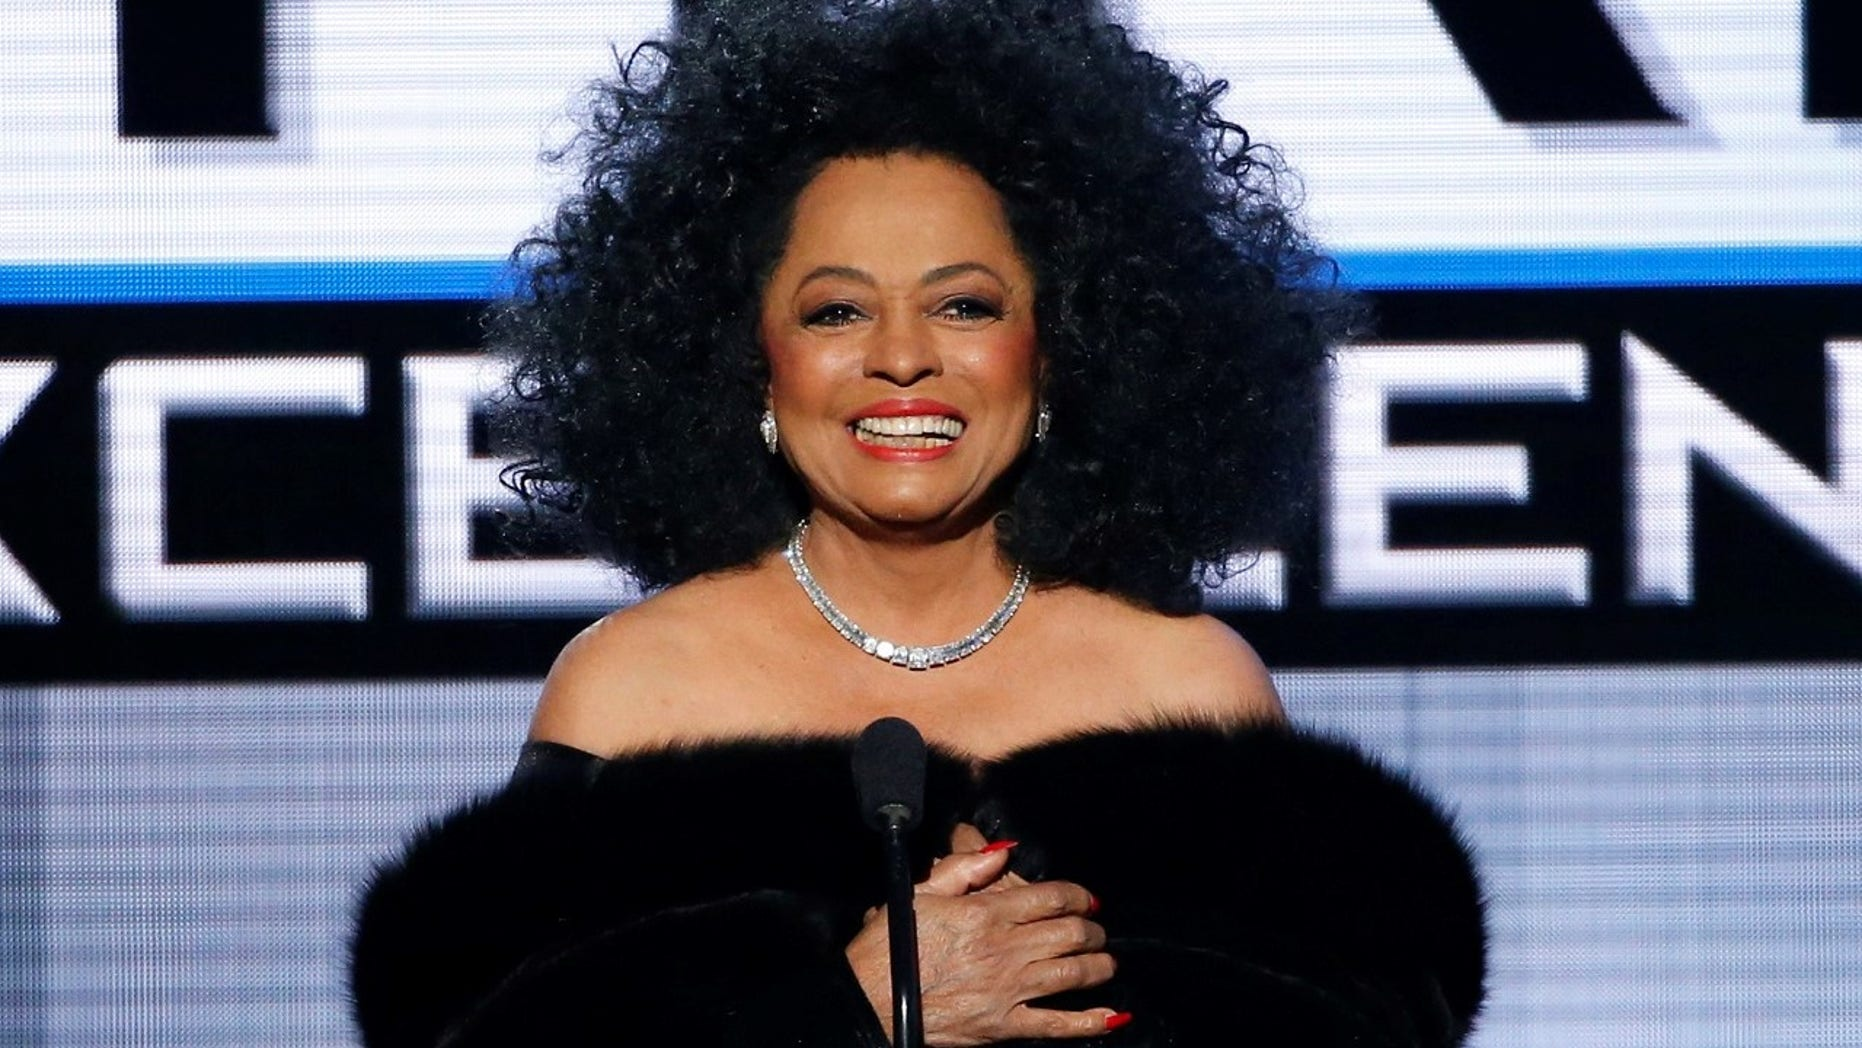 Diana Ross said she lost her fanny pack at a Los Angeles Marshalls over the weekend.